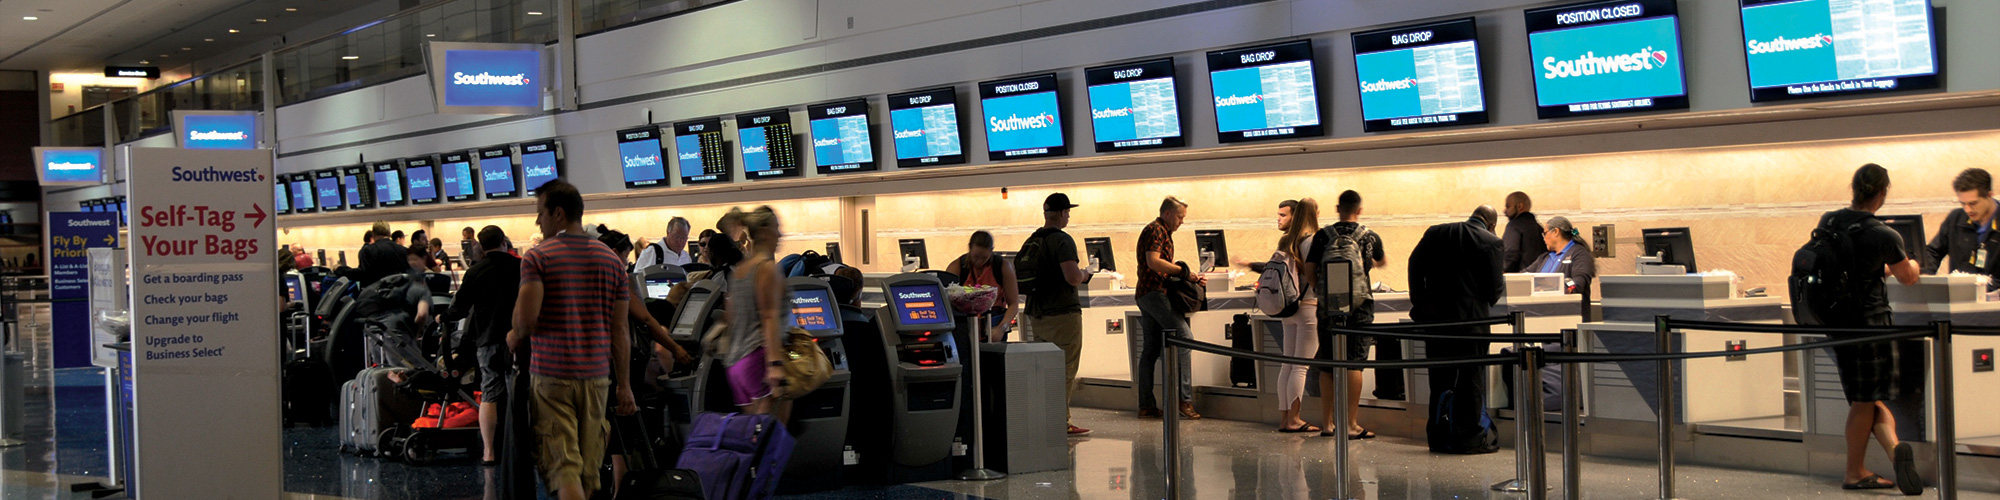 Terminal 1 - T1 at McCarran International Airport